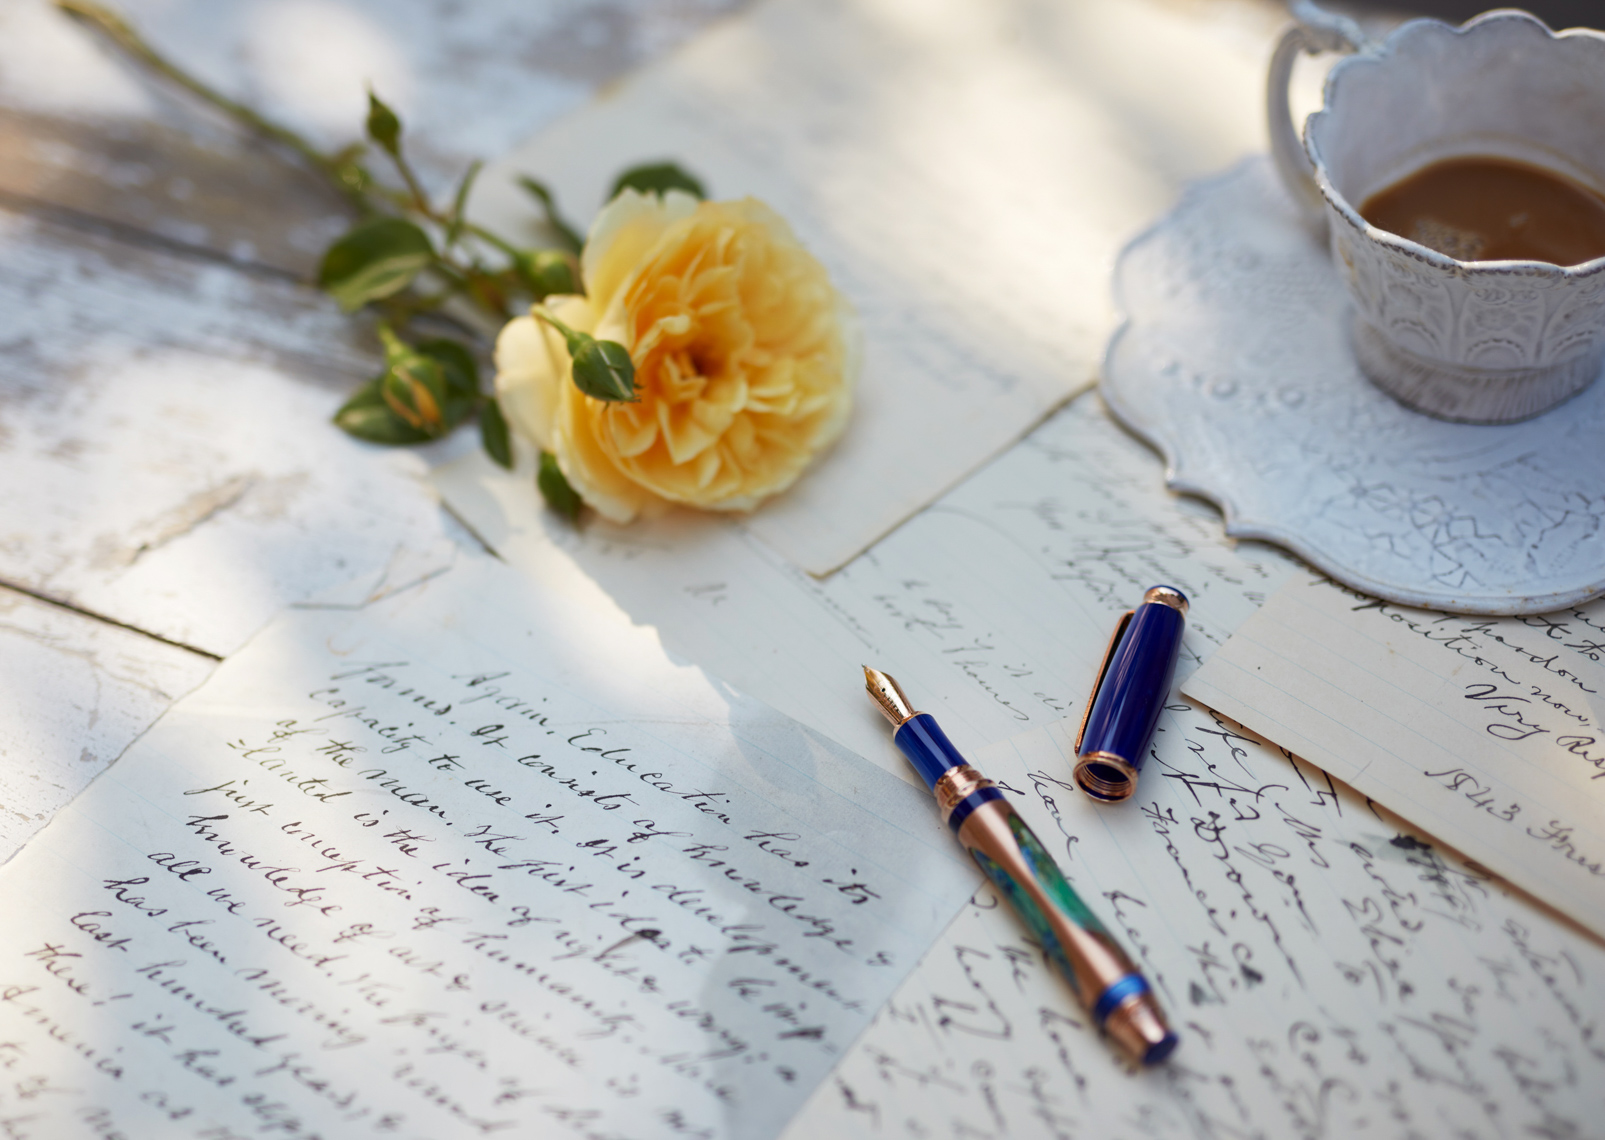 Old letters with colorful pen roses and tea